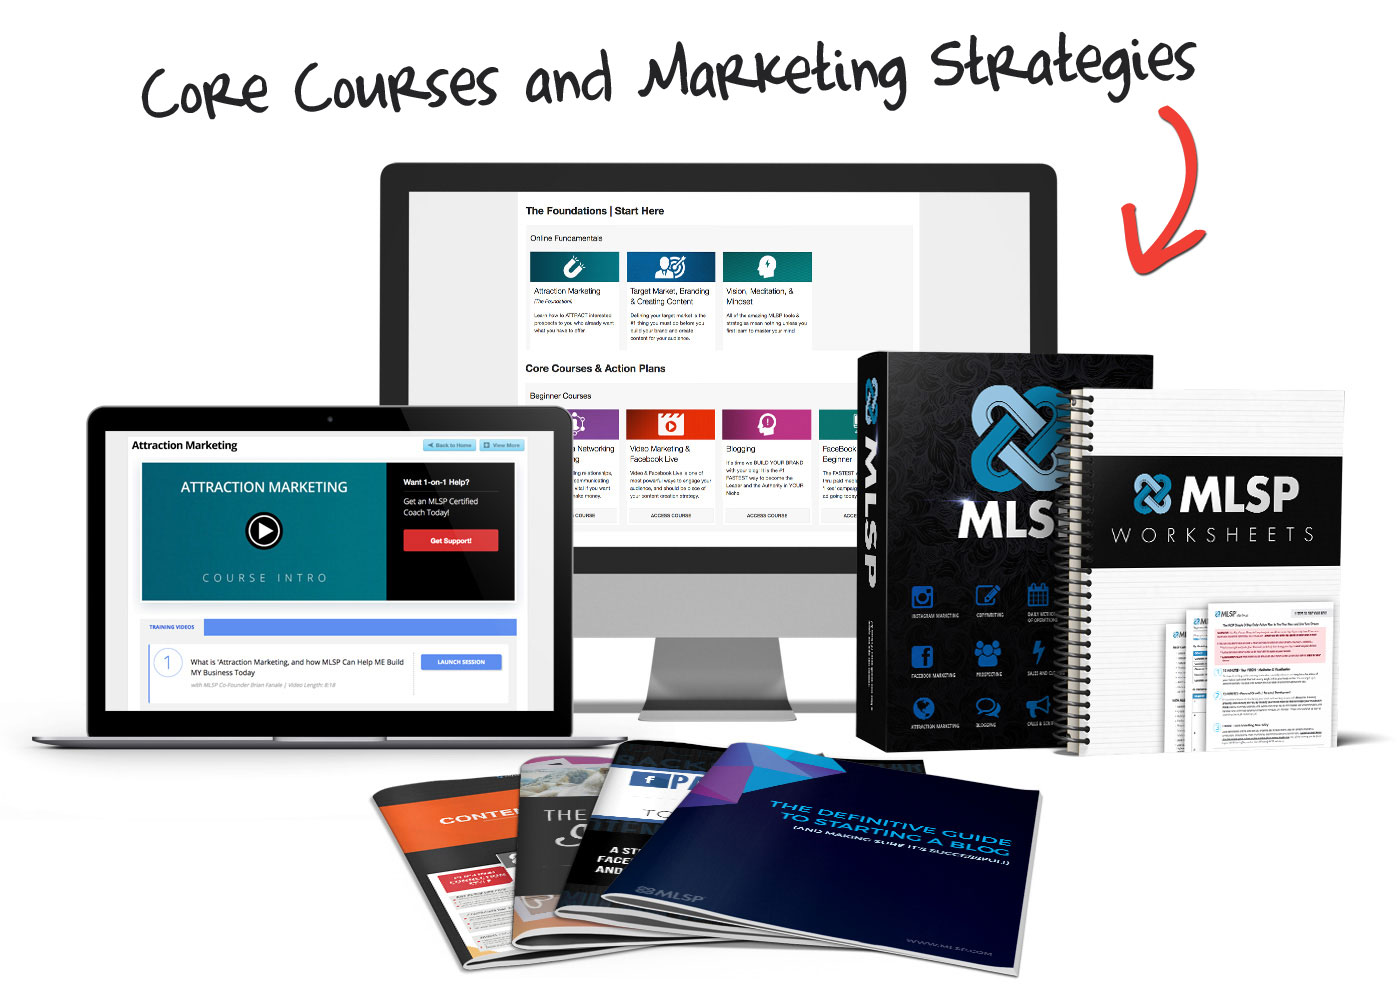 MLSP Core Courses and Marketing Strategies